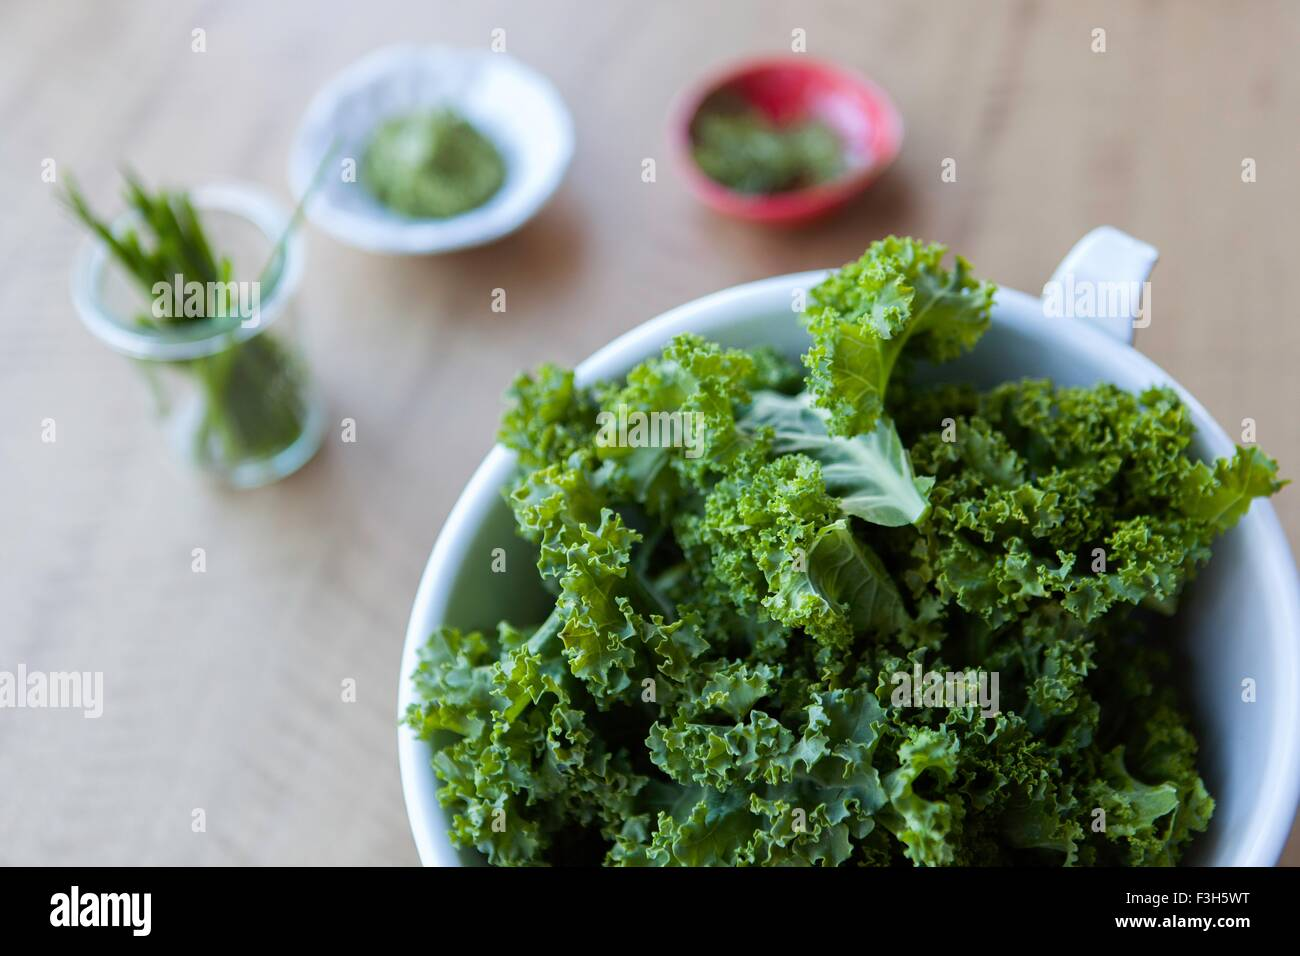 Overhead view of kale and herbs - Stock Image